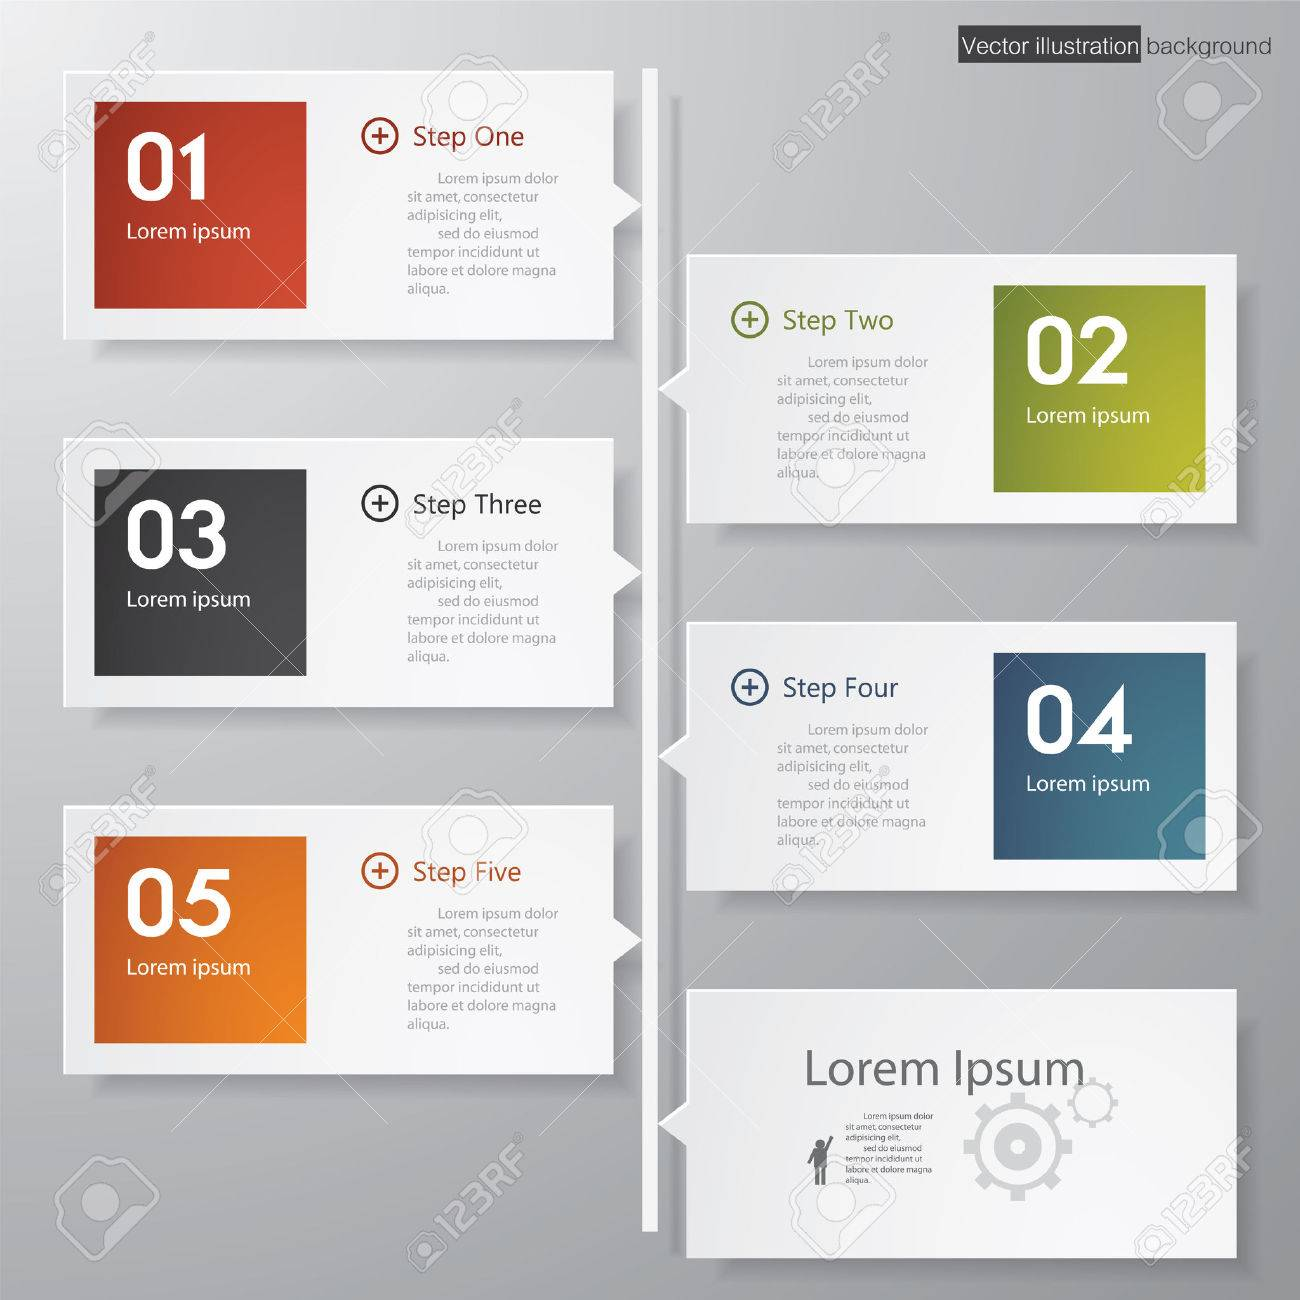 Design Clean Number Banners Template Graphic Or Website Layout - Timeline graphic template